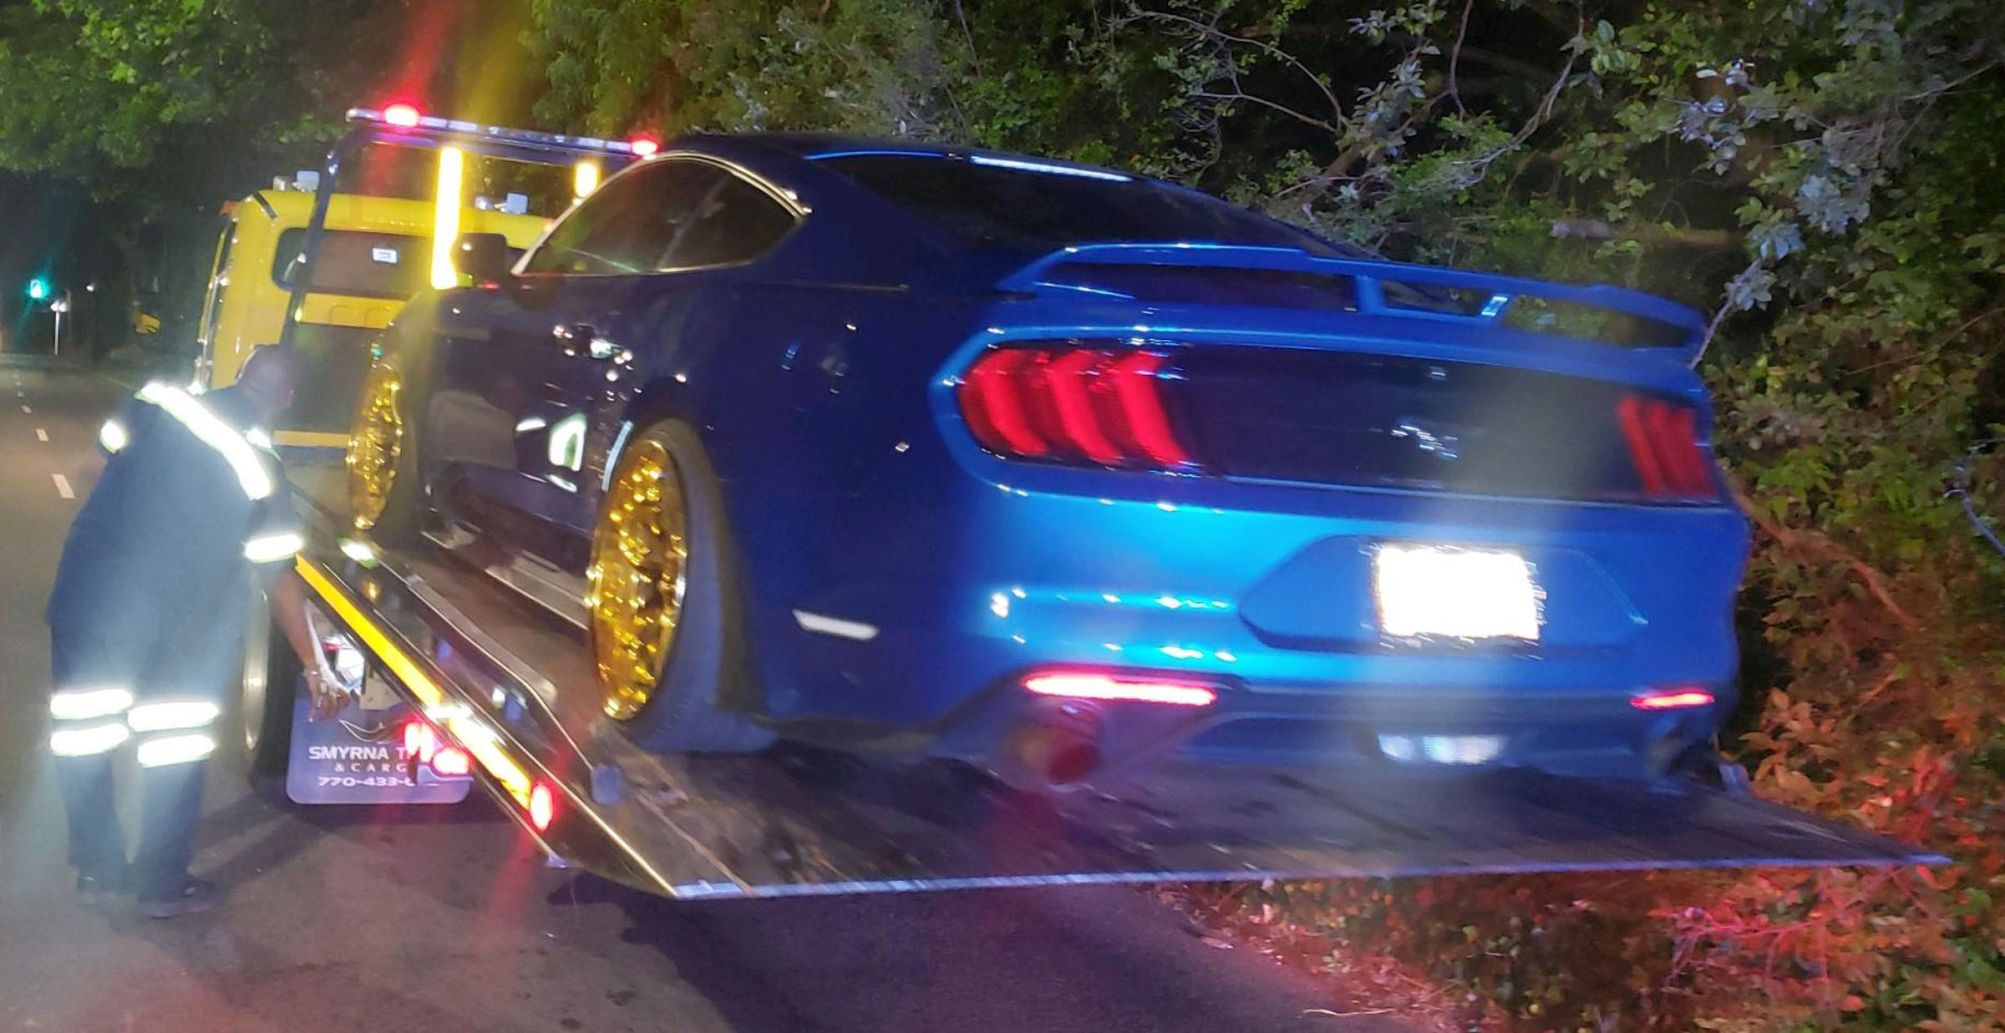 The Atlanta Police Have Arrested 44 Individuals And Impounded 29 Cars In A Street Racing Bust News Mdjonline Com